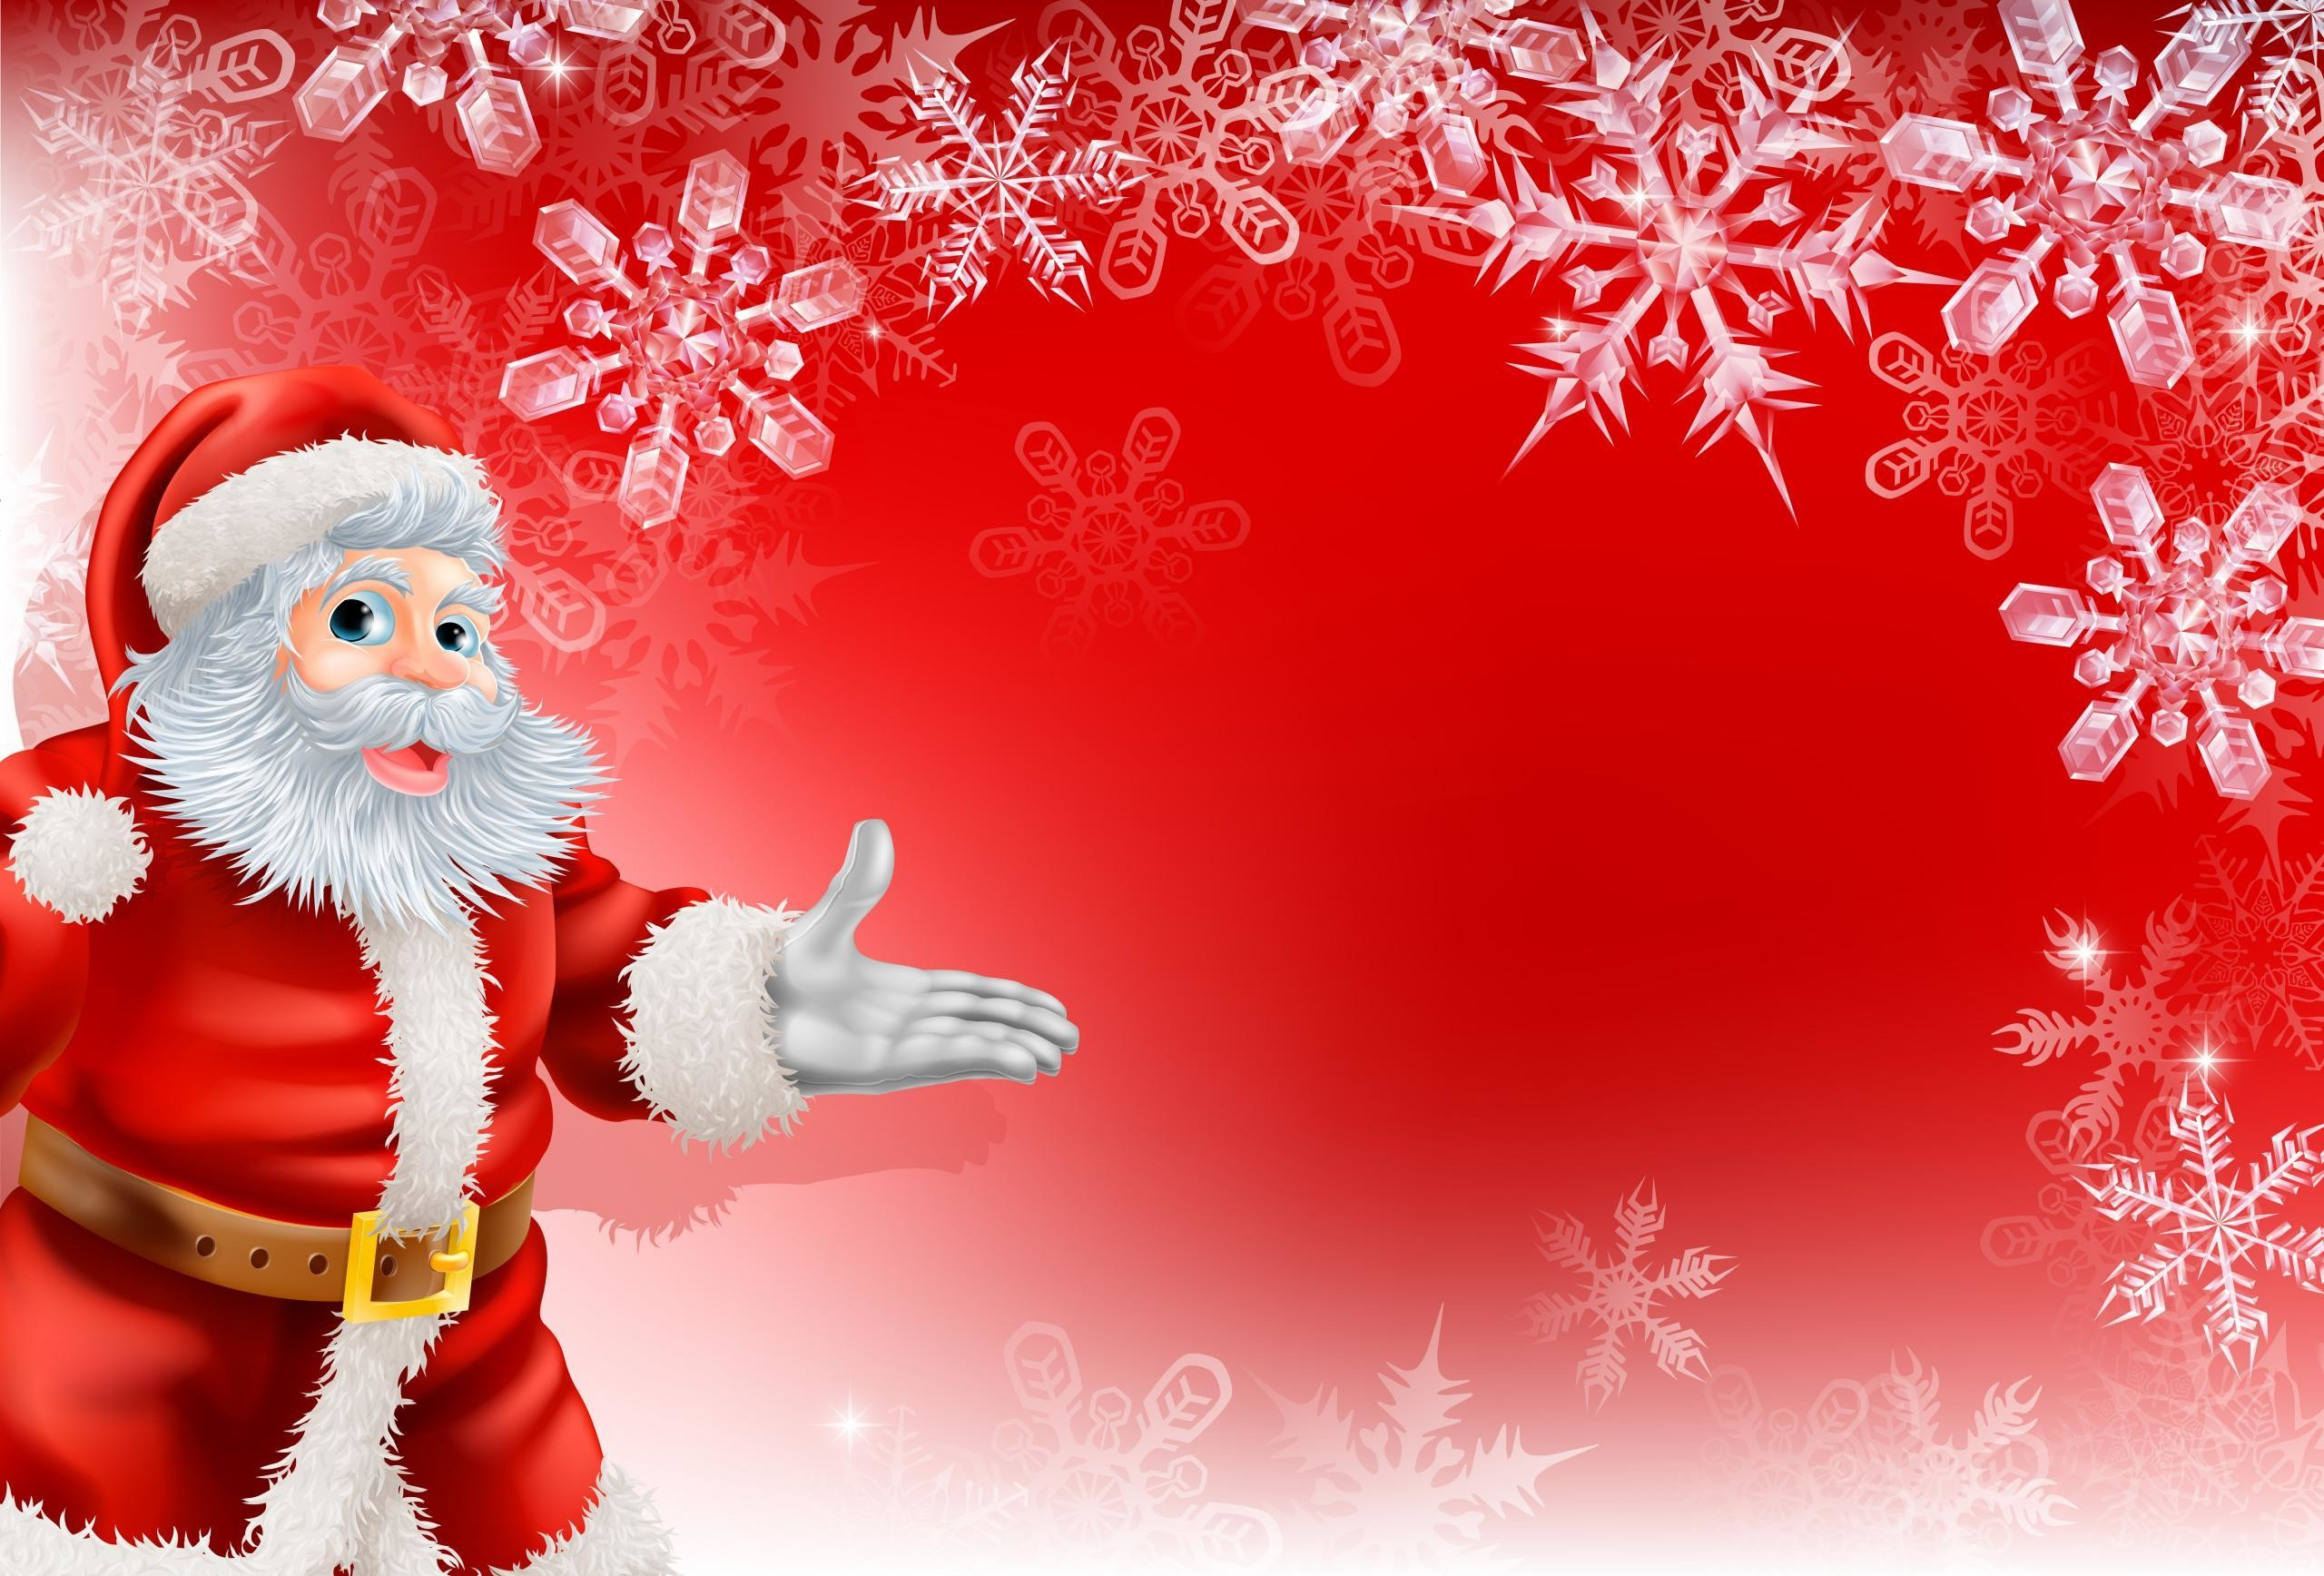 2560x1736 Christmas Santa Claus Wallpaper HD Pictures